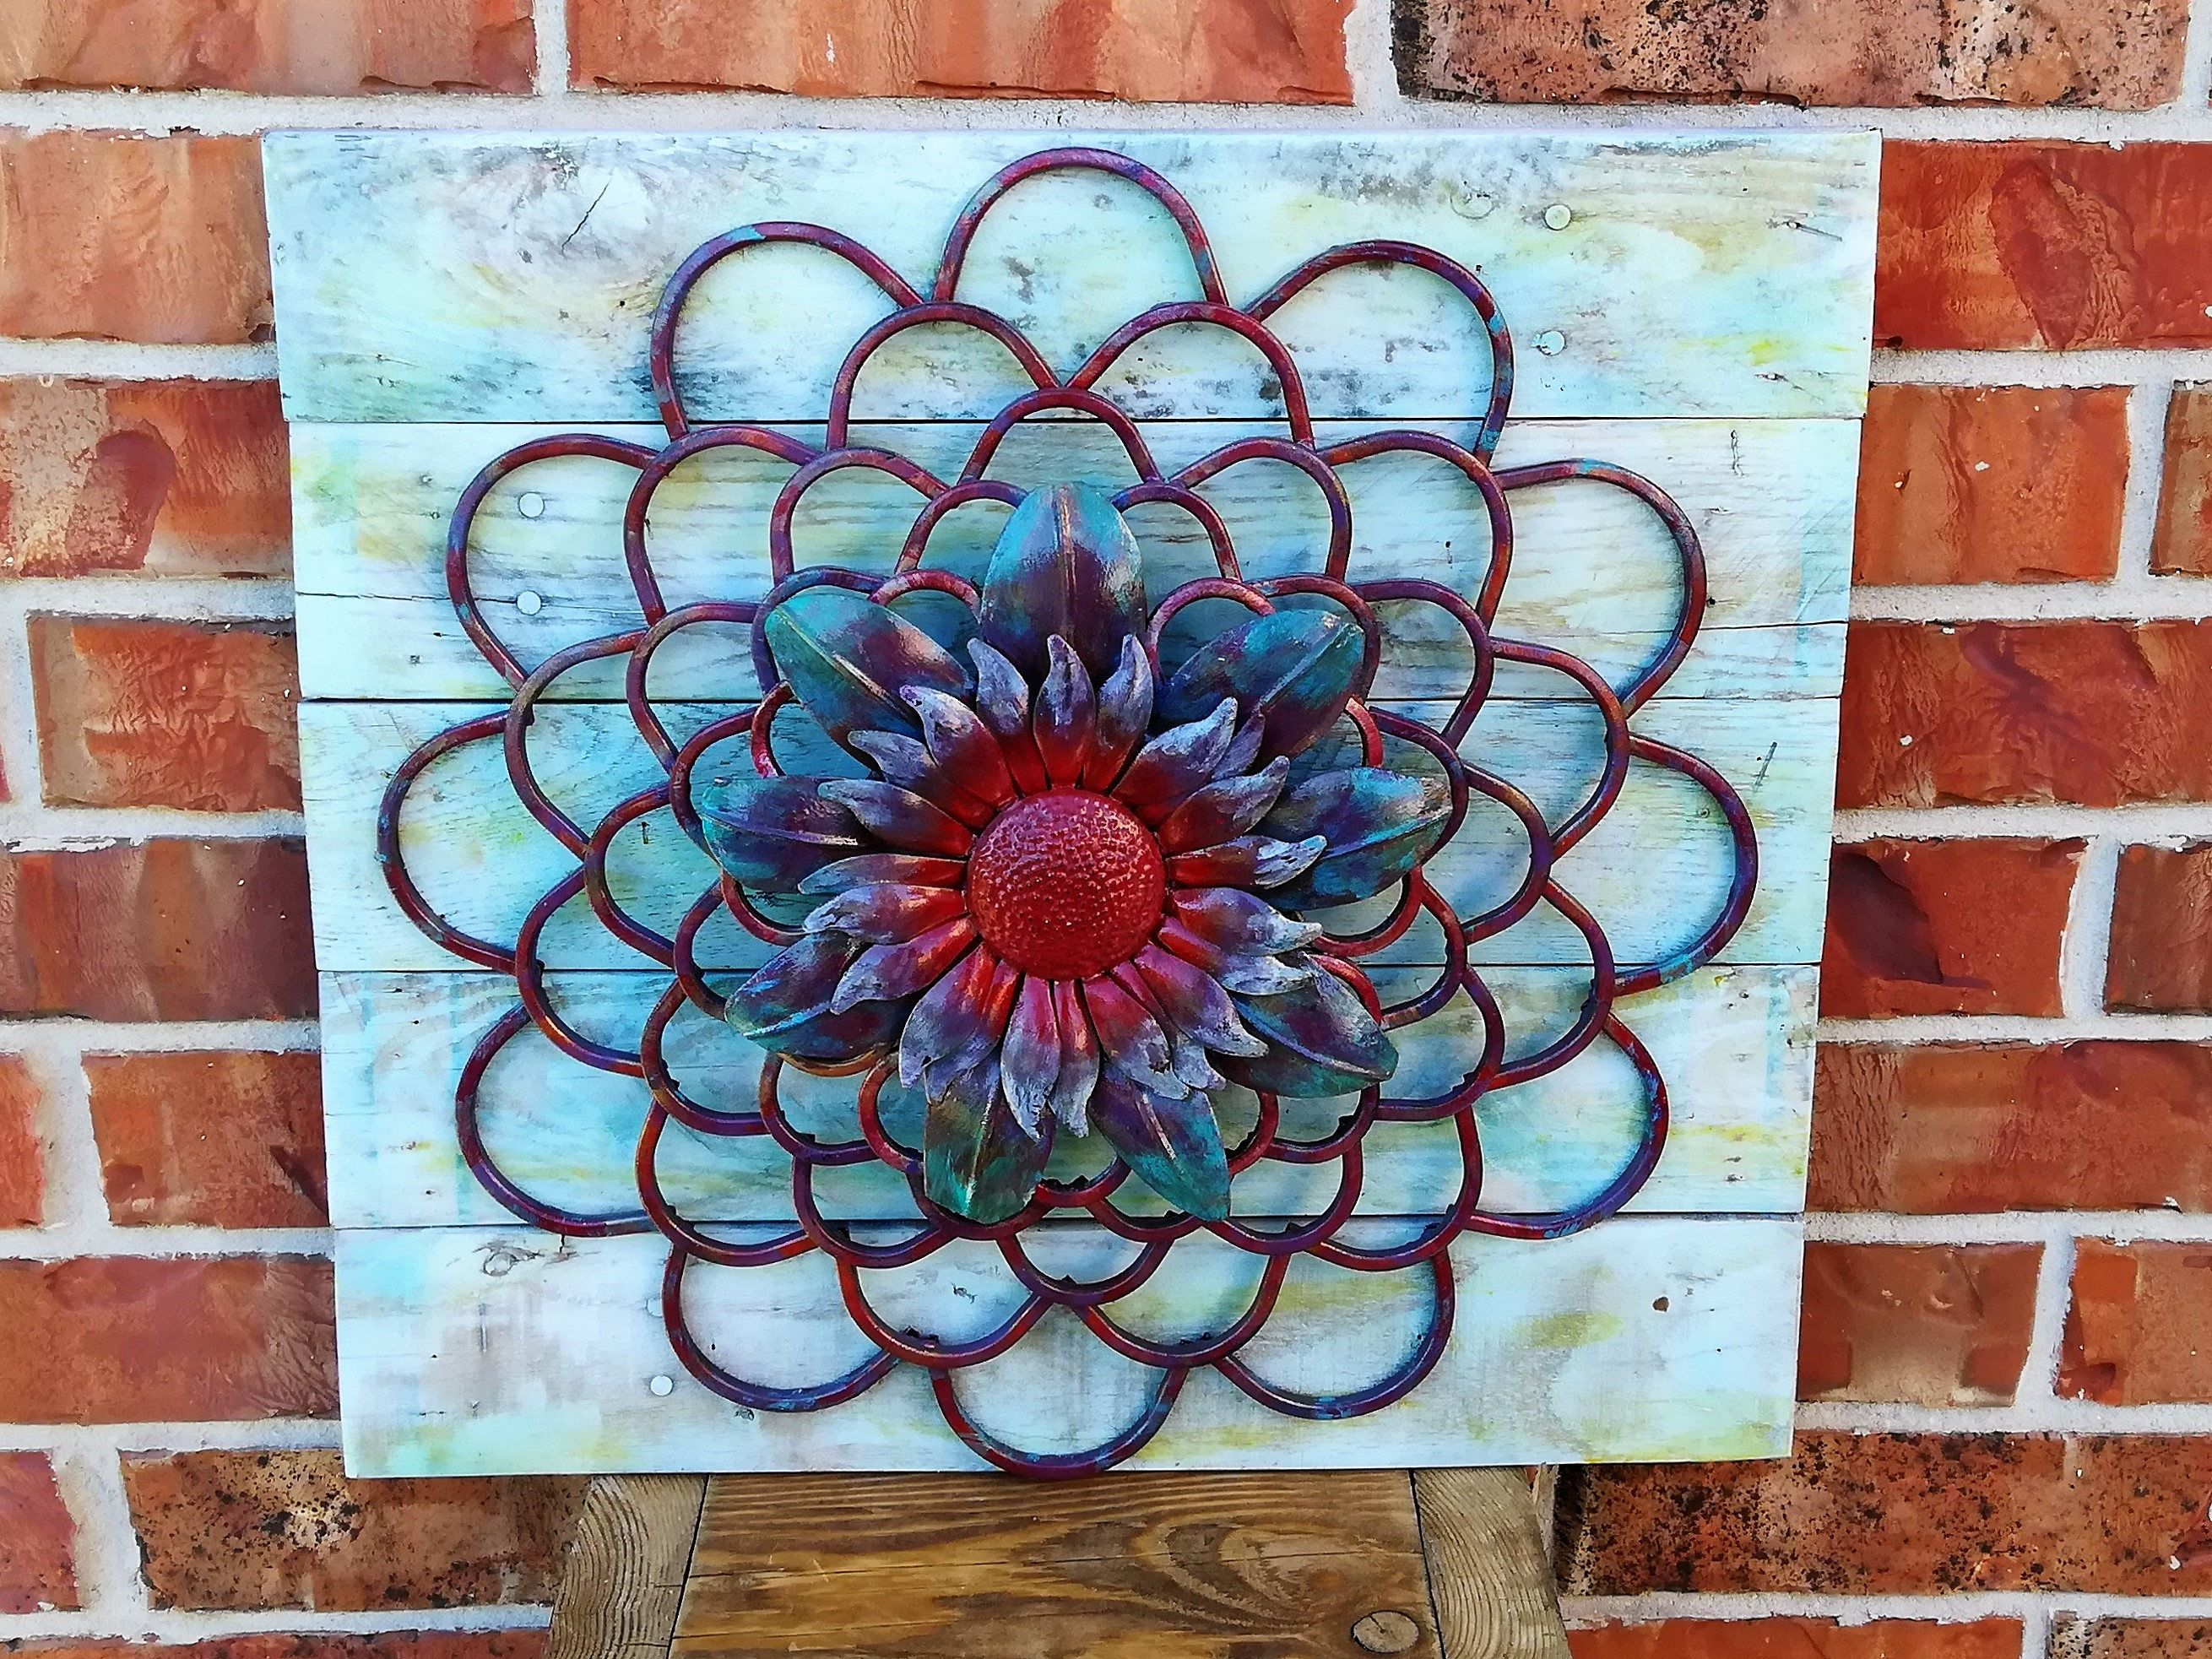 Metal decor rounded wall art featuring blossomed flower on recycled